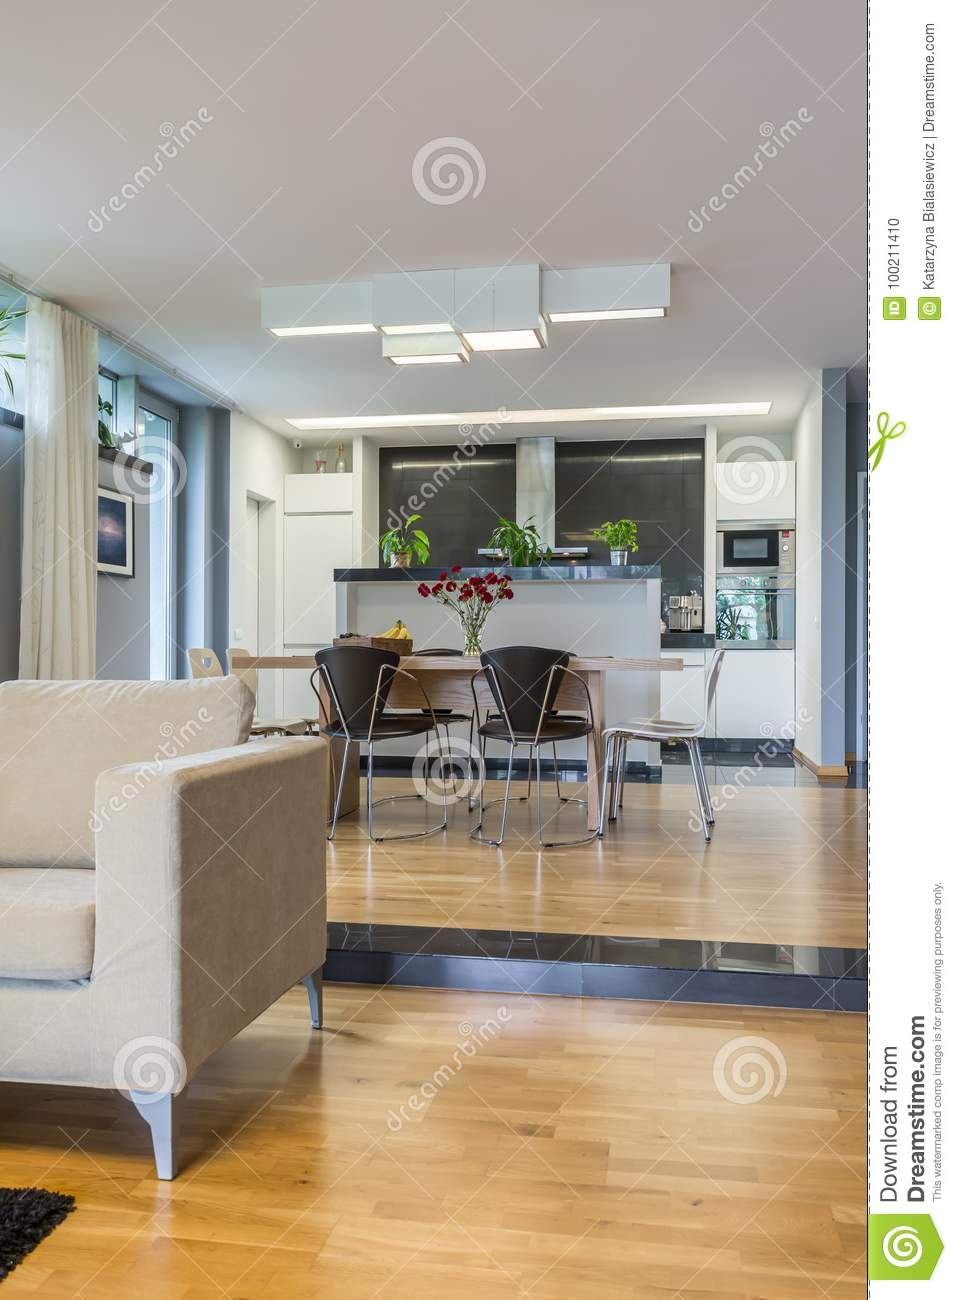 Lounge Connected With Dining Hall Stock Photo - Image of family ...